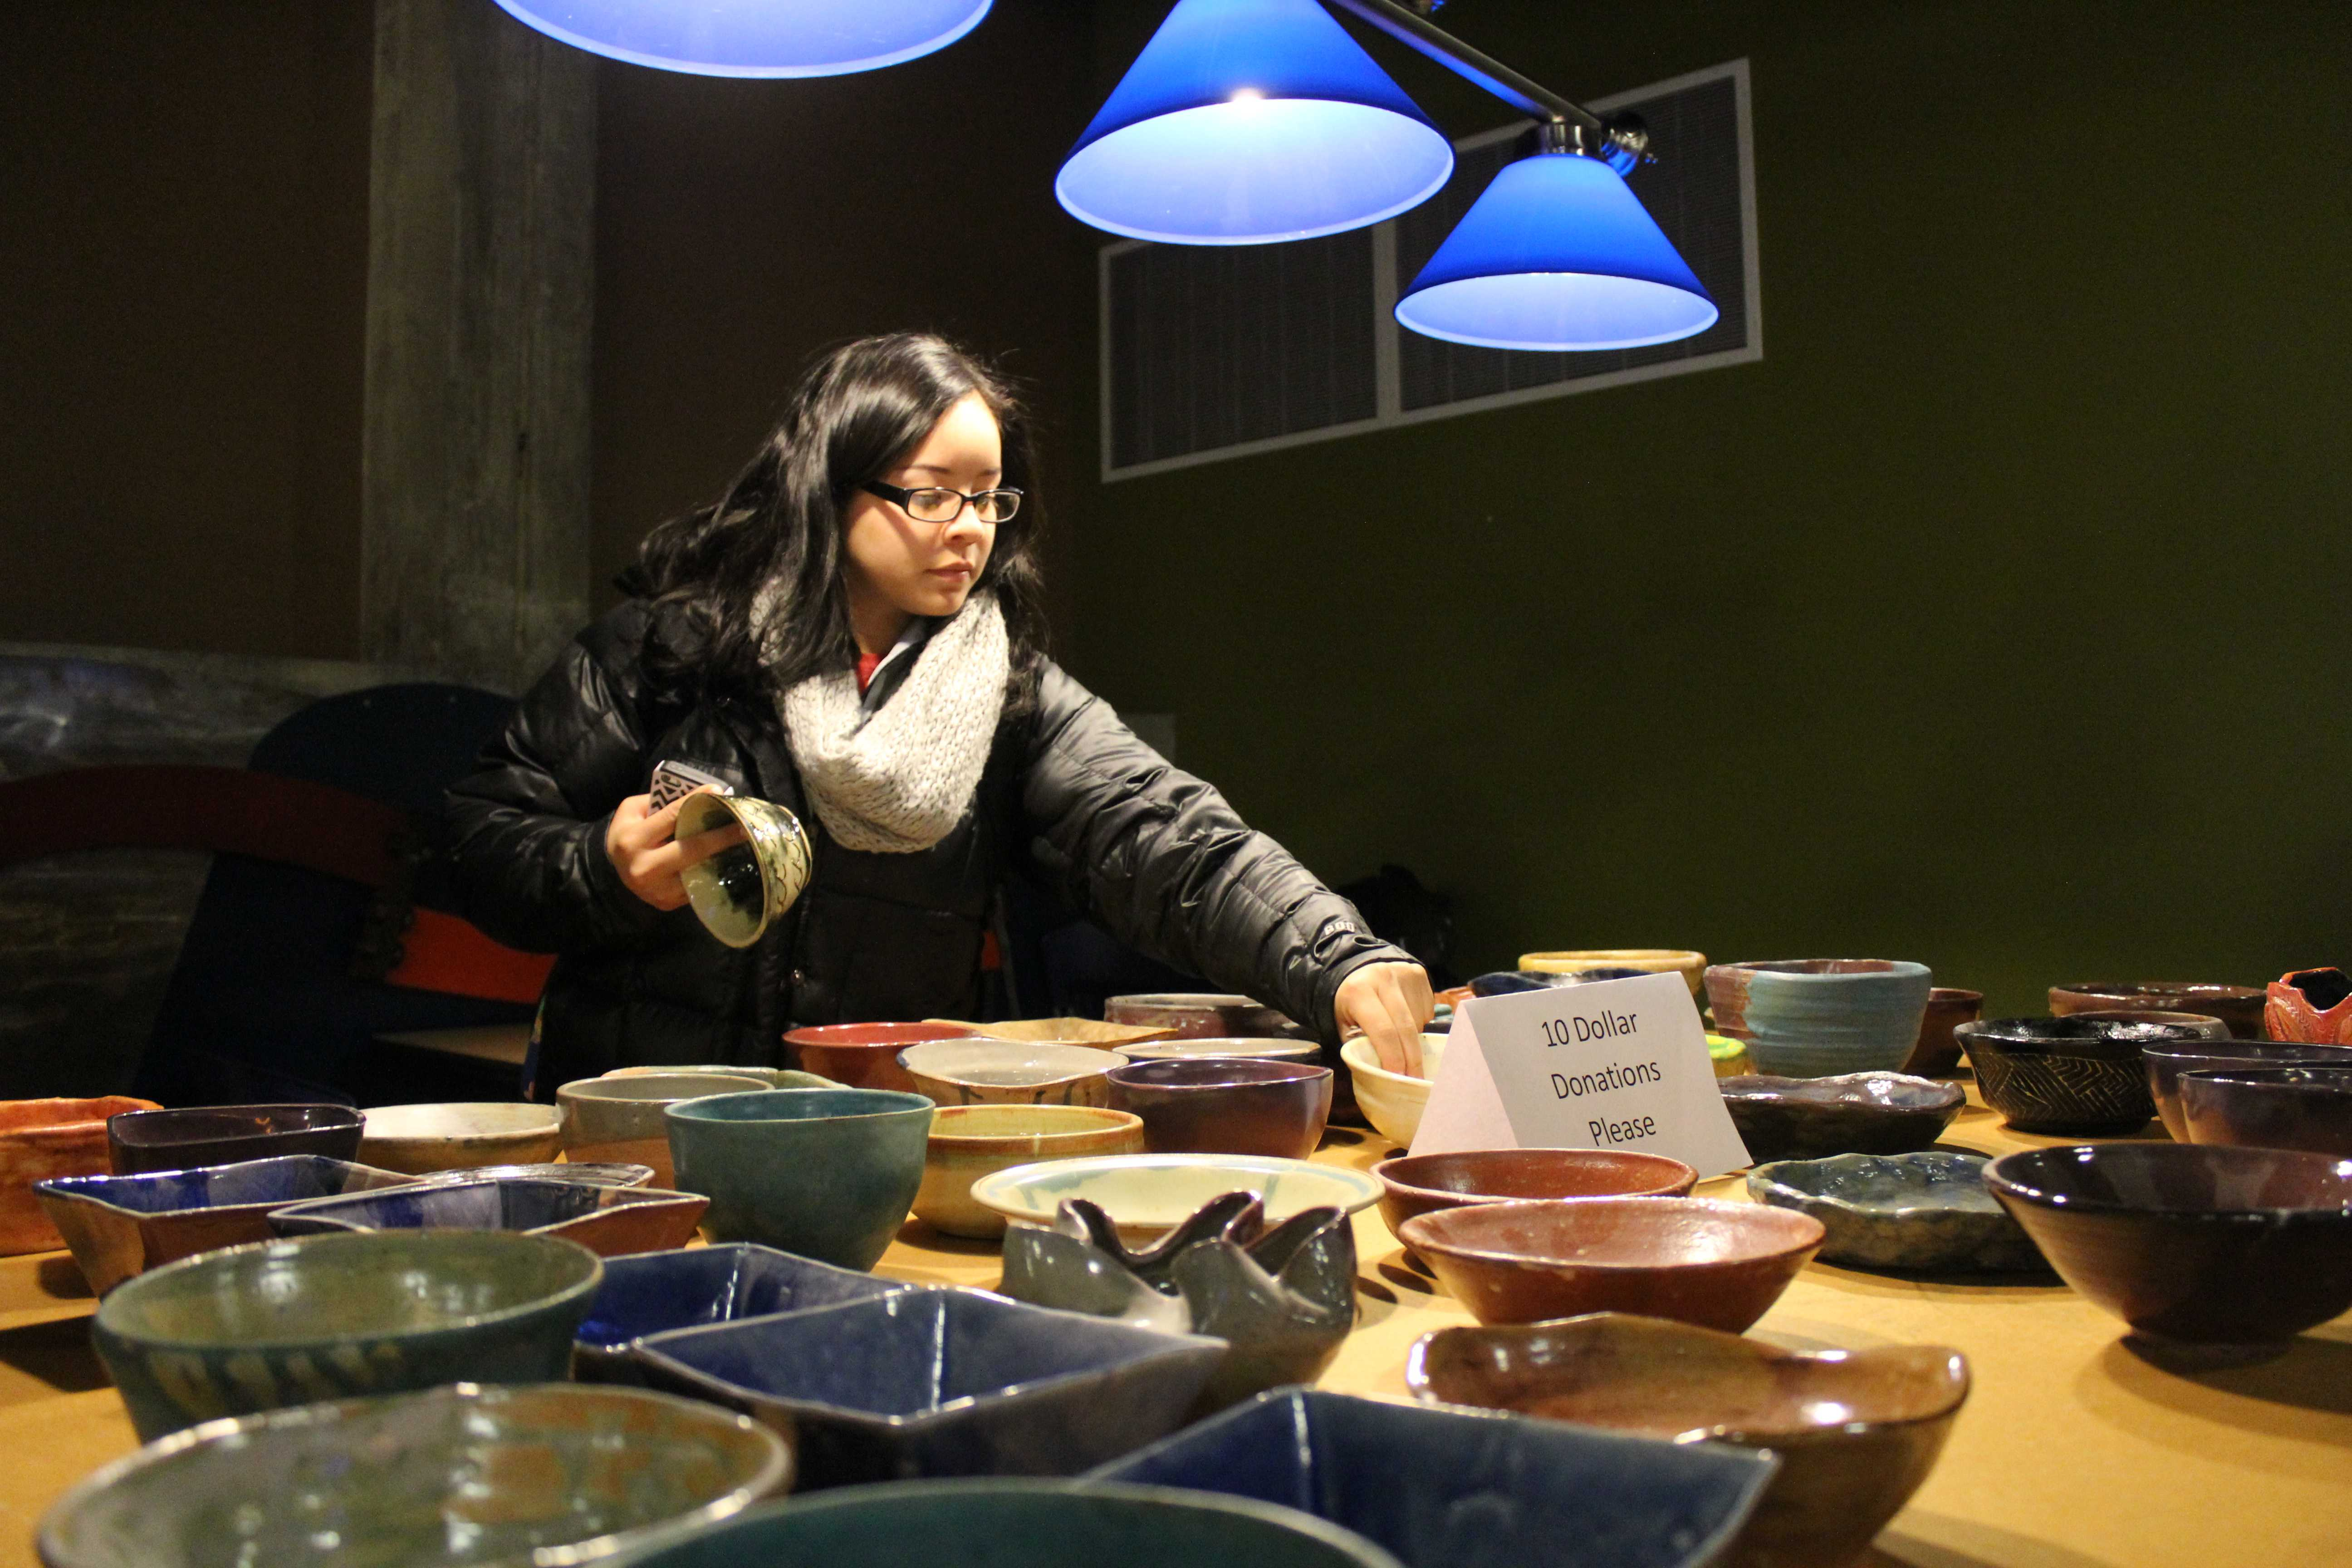 Art dept. creates bowls to fight hunger